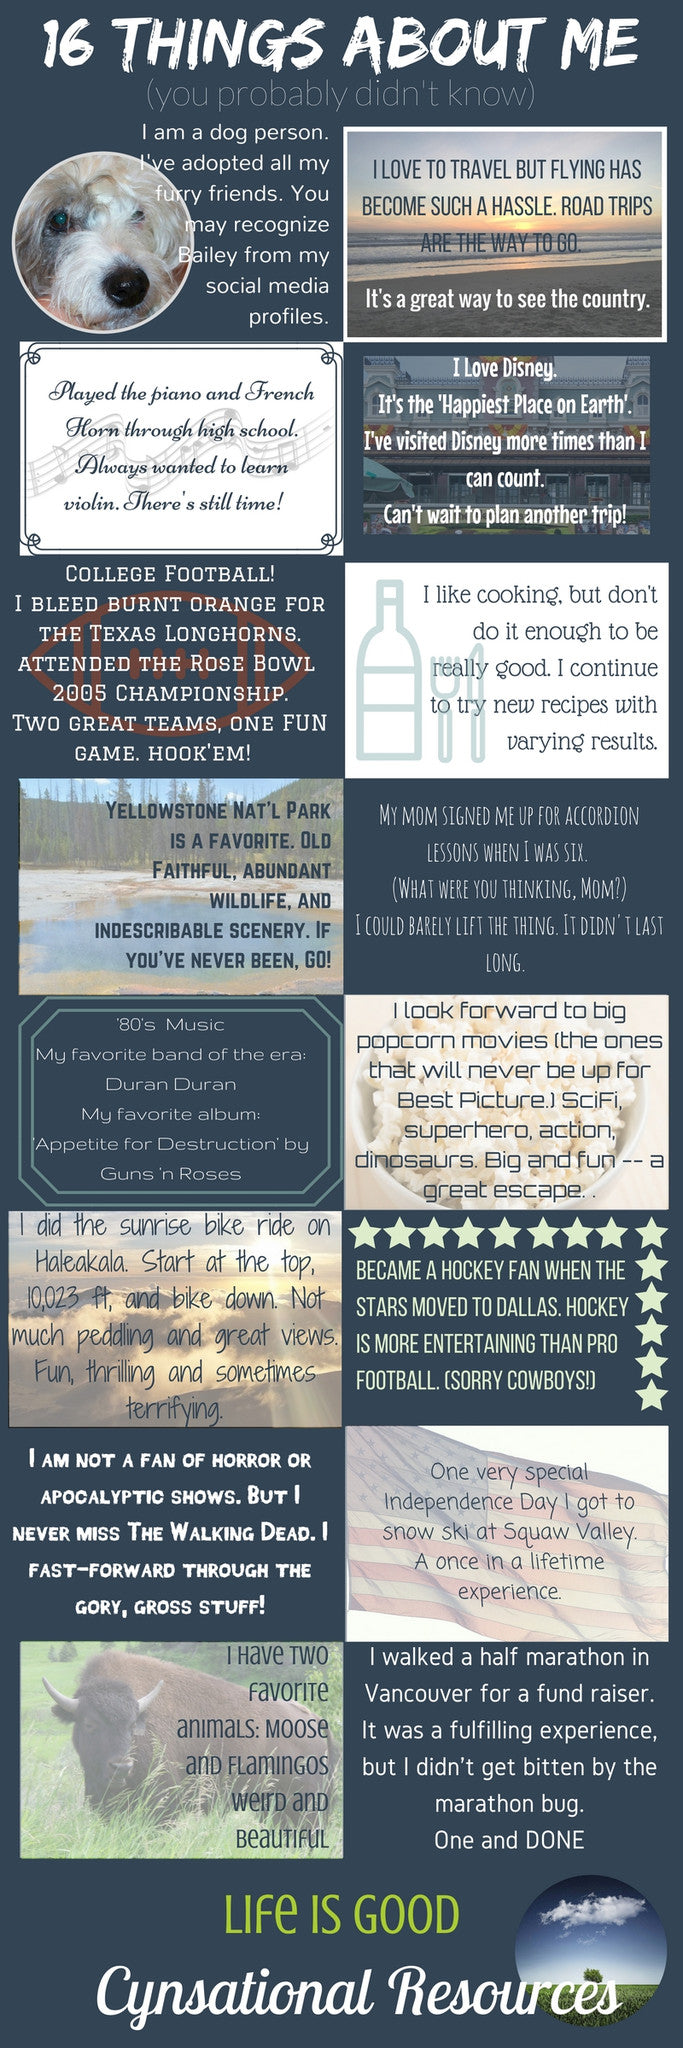 16 Fun Facts about me INFOGRAPHIC